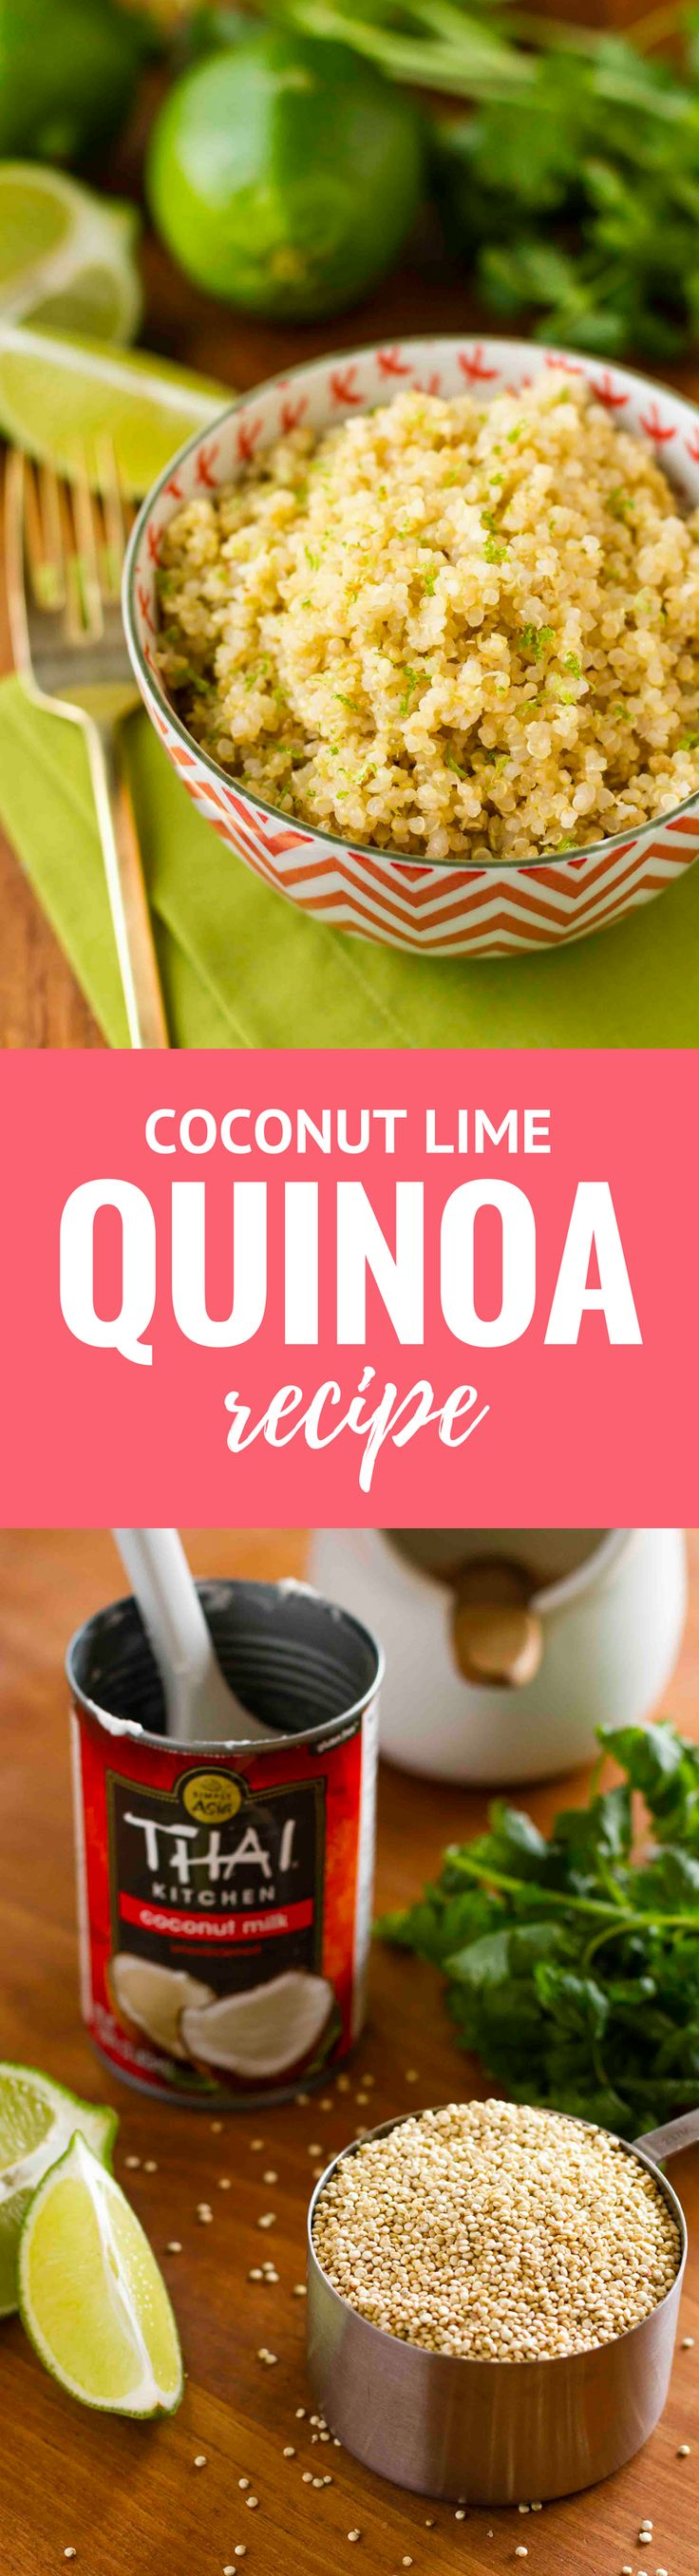 Coconut Lime Quinoa -- 3 ingredients and insanely easy prep (use your rice cooker or Instant Pot!) make this delicious & healthy quinoa recipe a go-to weeknight vegetarian side dish. Total winner! | unsophisticook.com